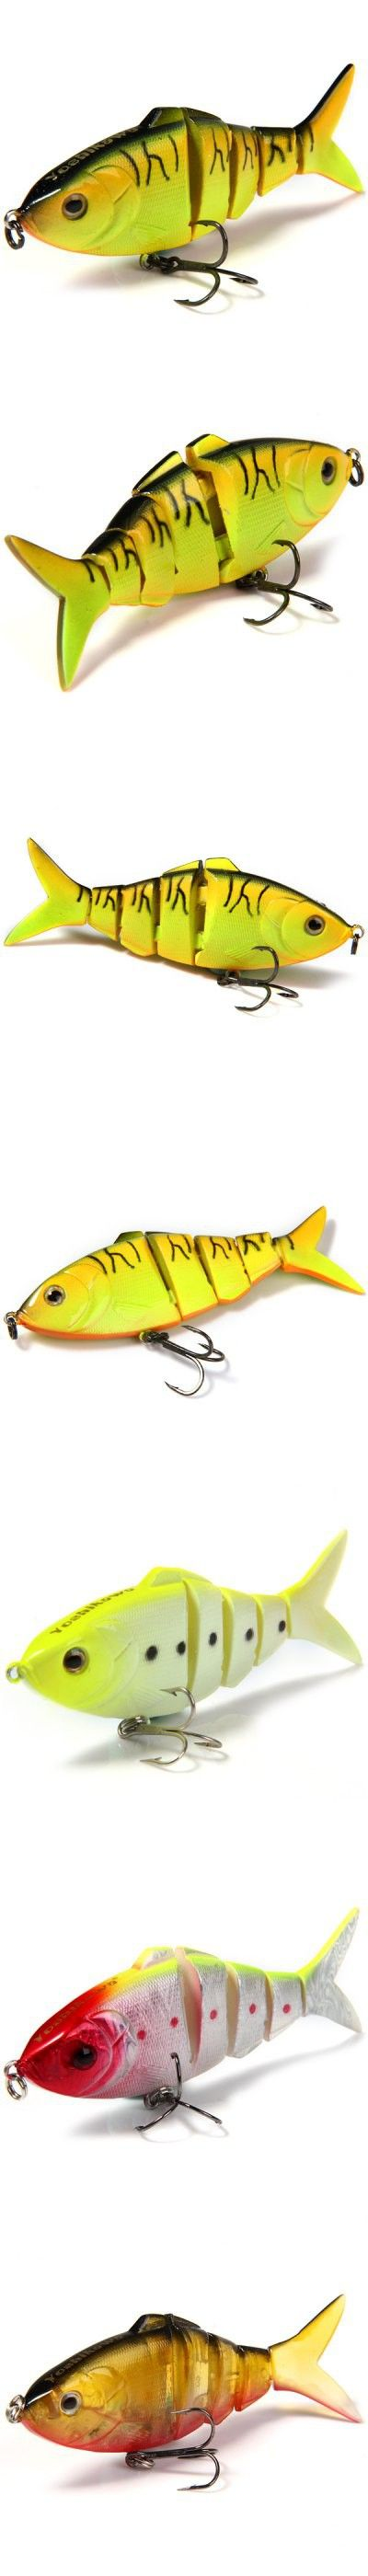 17 best ideas about fishing bait on pinterest   fishing tips, bass, Soft Baits